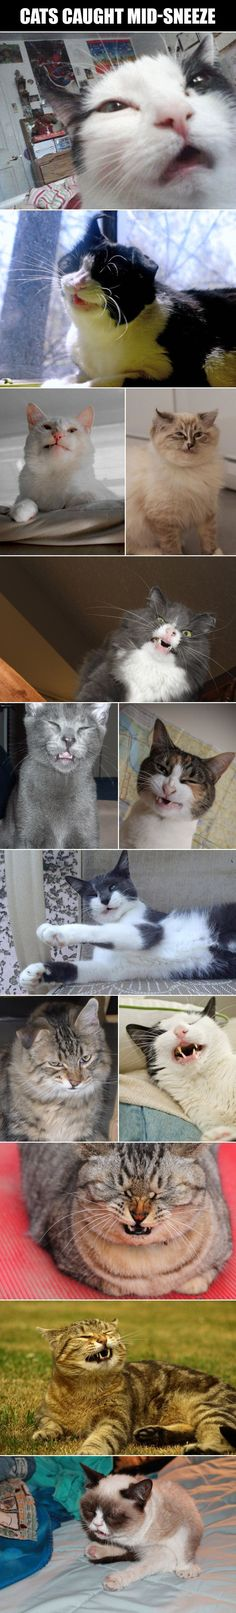 Cats Caught Mid Sneeze a hahahahaha'